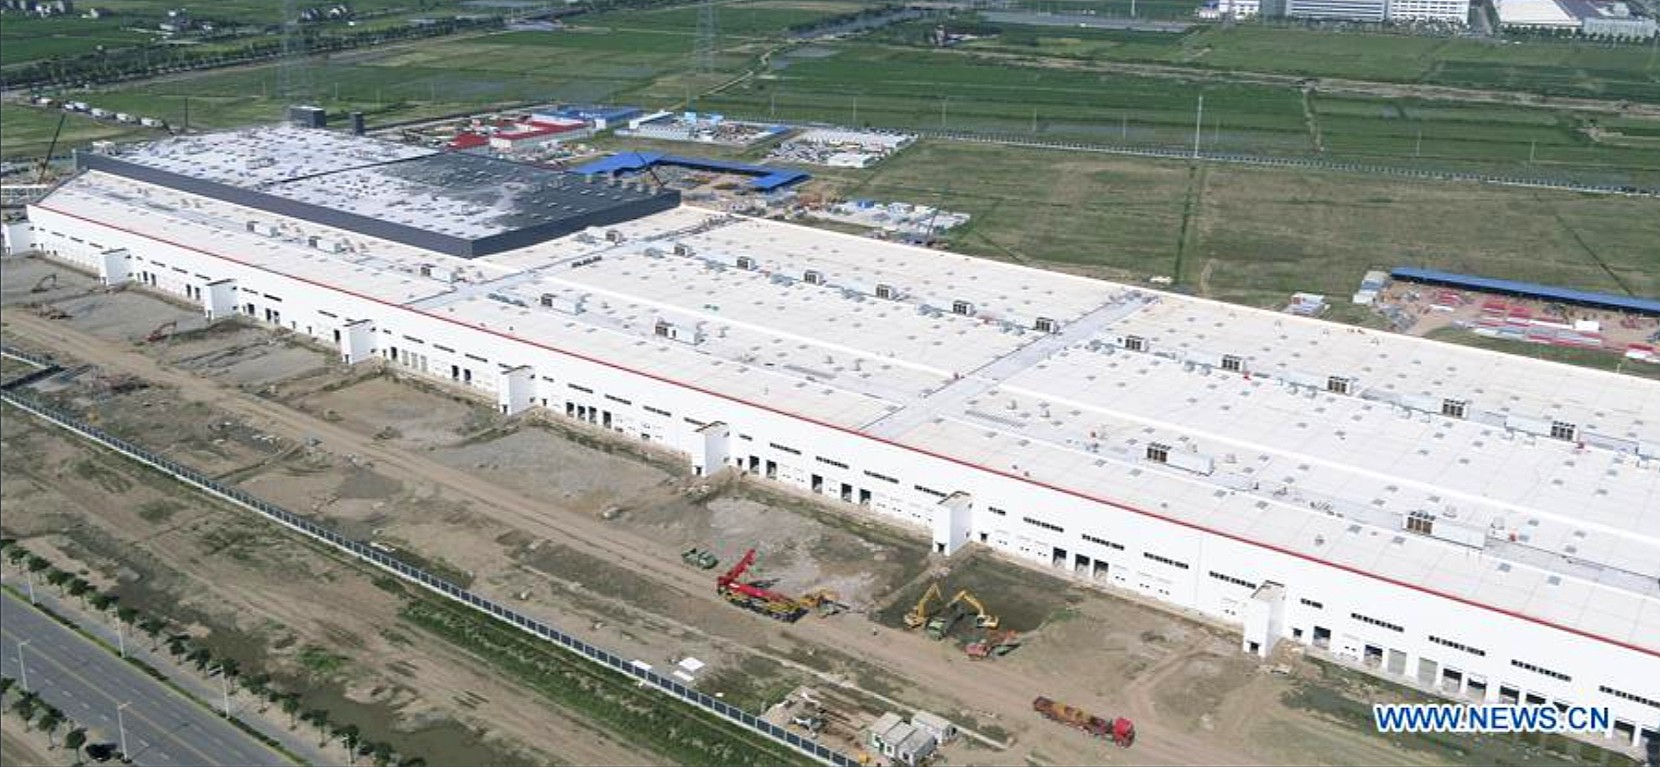 Tesla Gigafactory 3 obtains vital certificate after completing inspection in record time